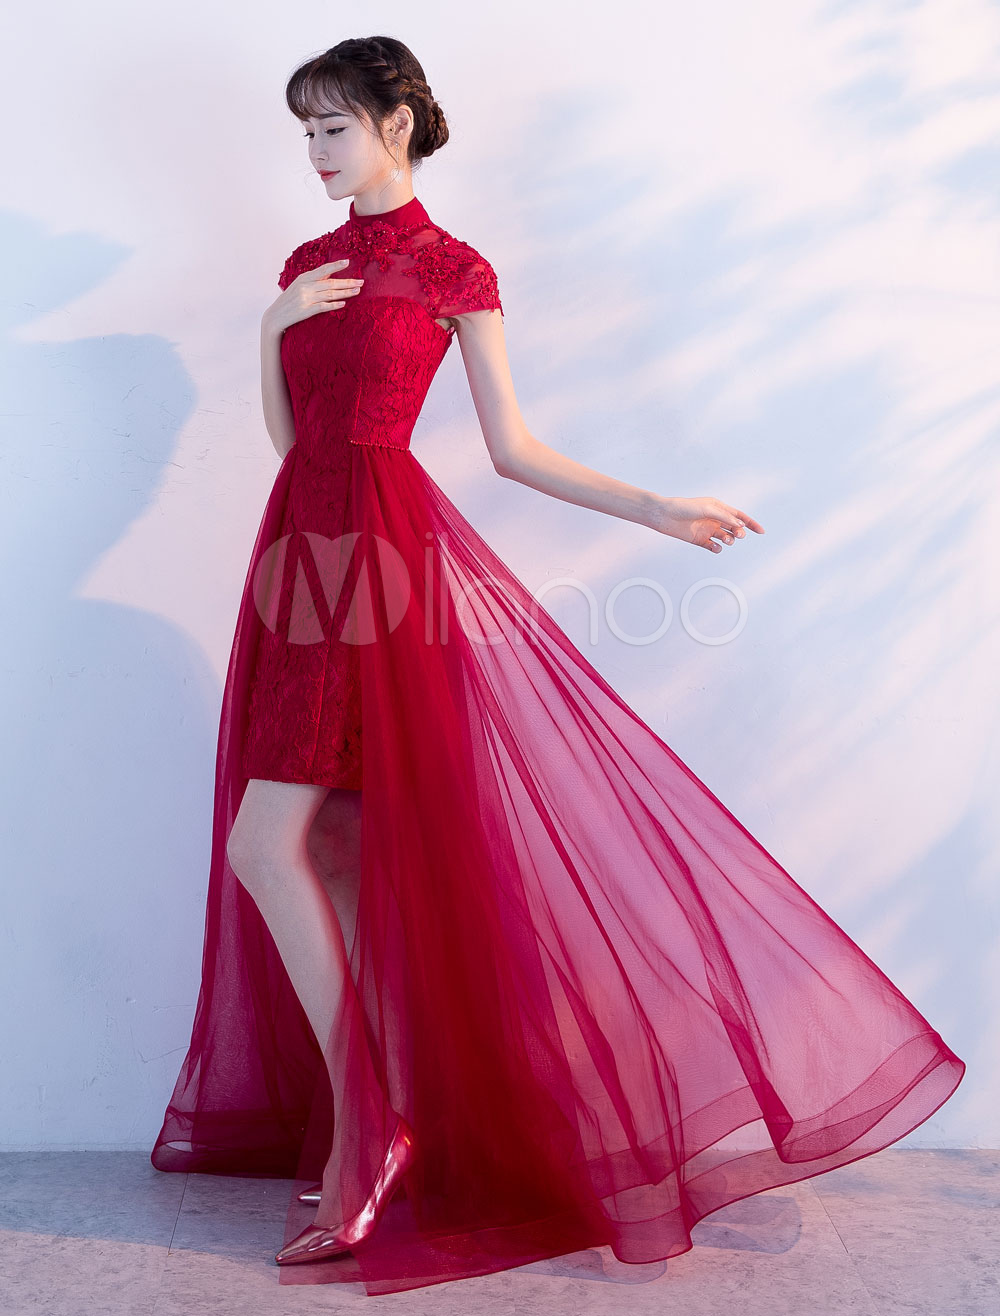 Burgundy Prom Dresses Long Lace Tulle Evening Dresses High Low Short Sleeve Formal Dress (Wedding) photo